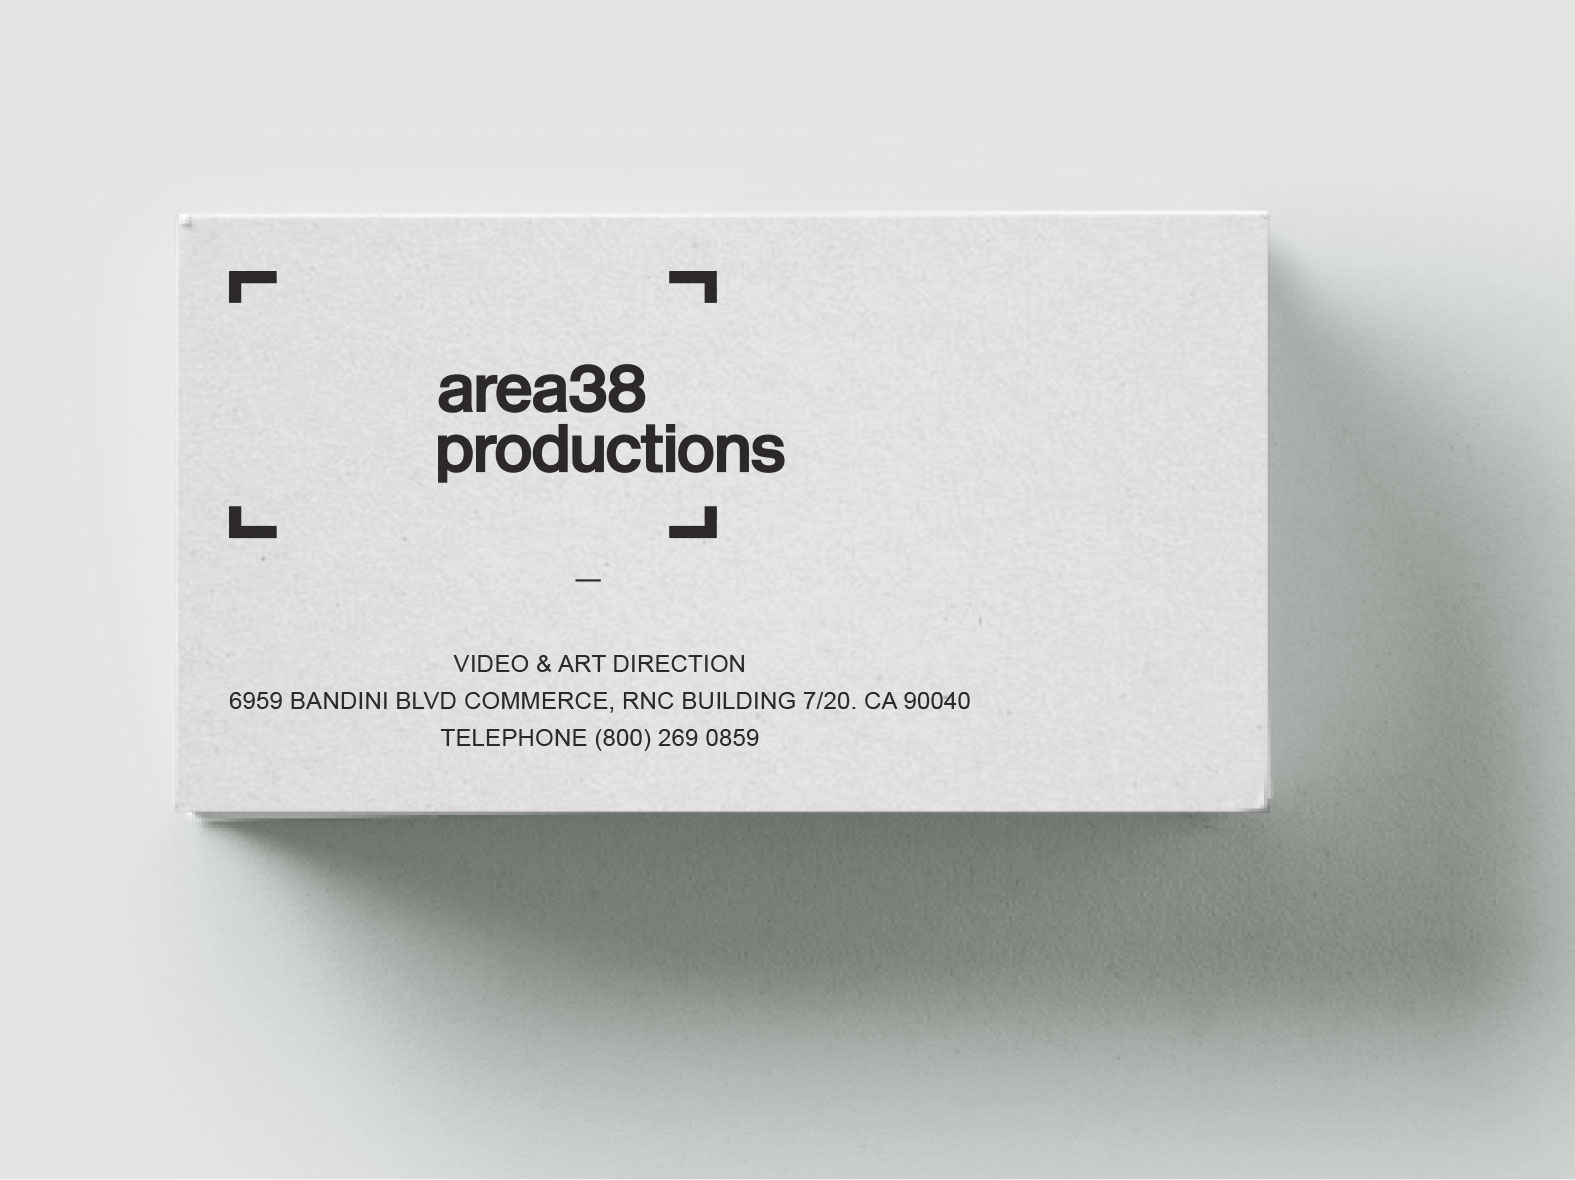 Video Production Branding Business Card